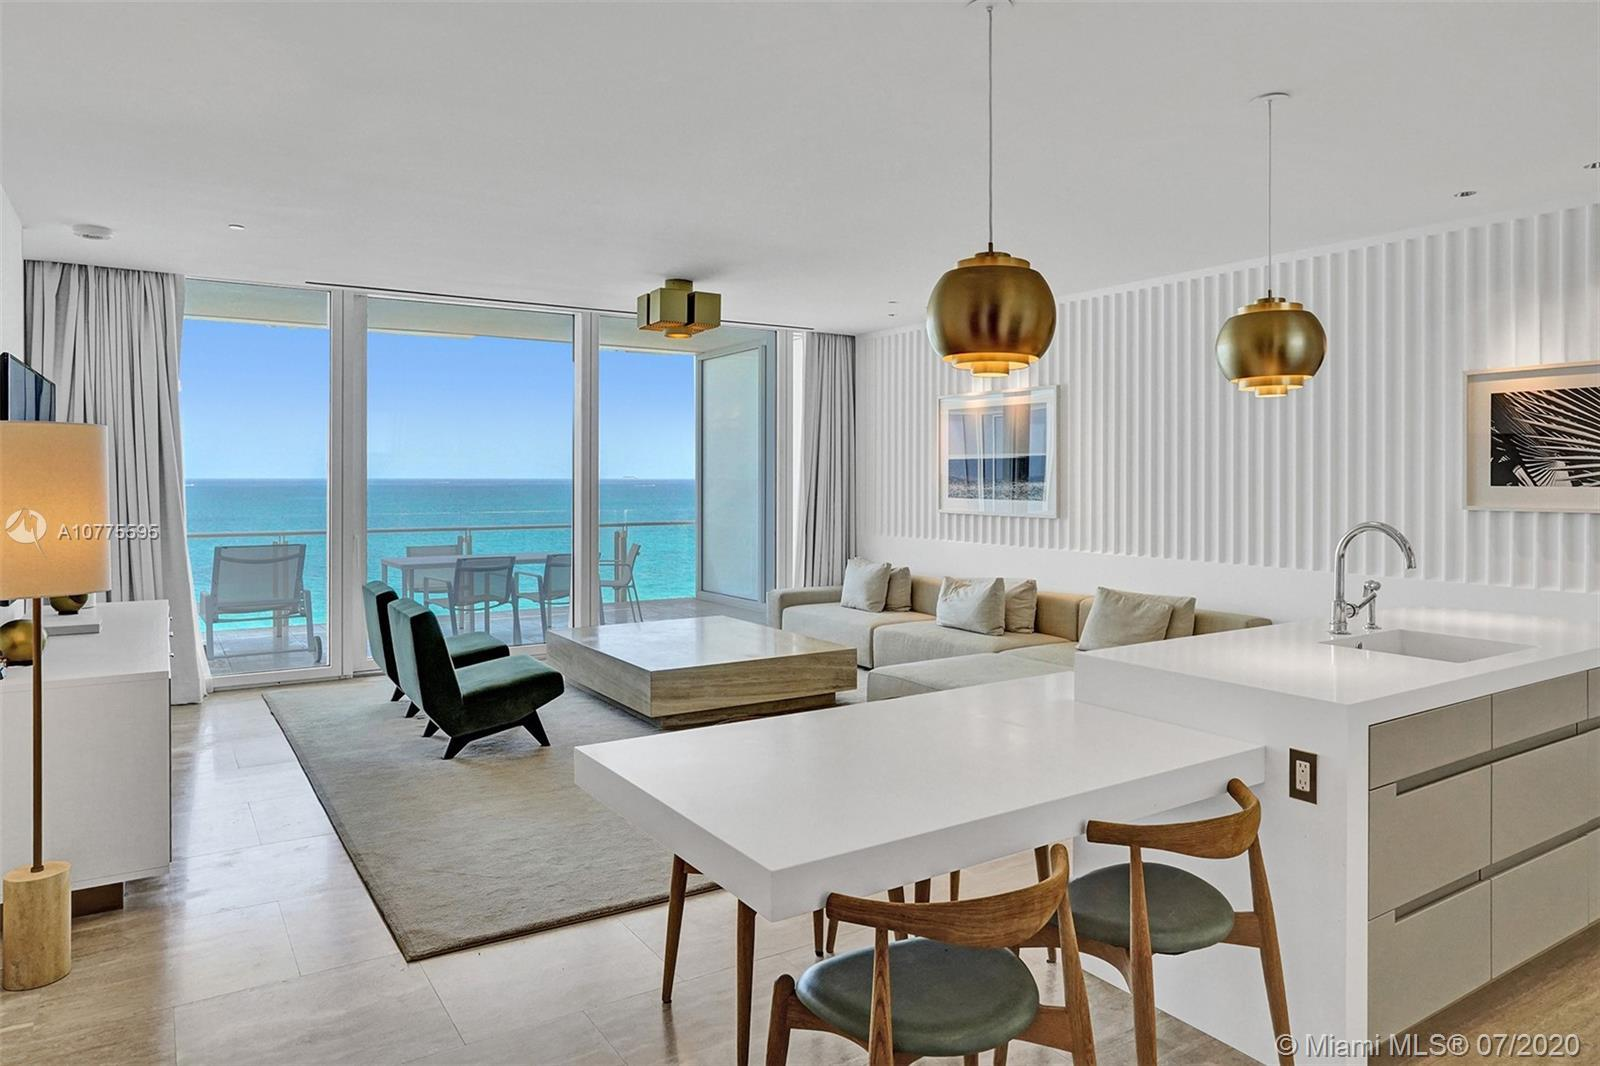 HOTEL RESIDENCE AT FOUR SEASONS SURF CLUB.